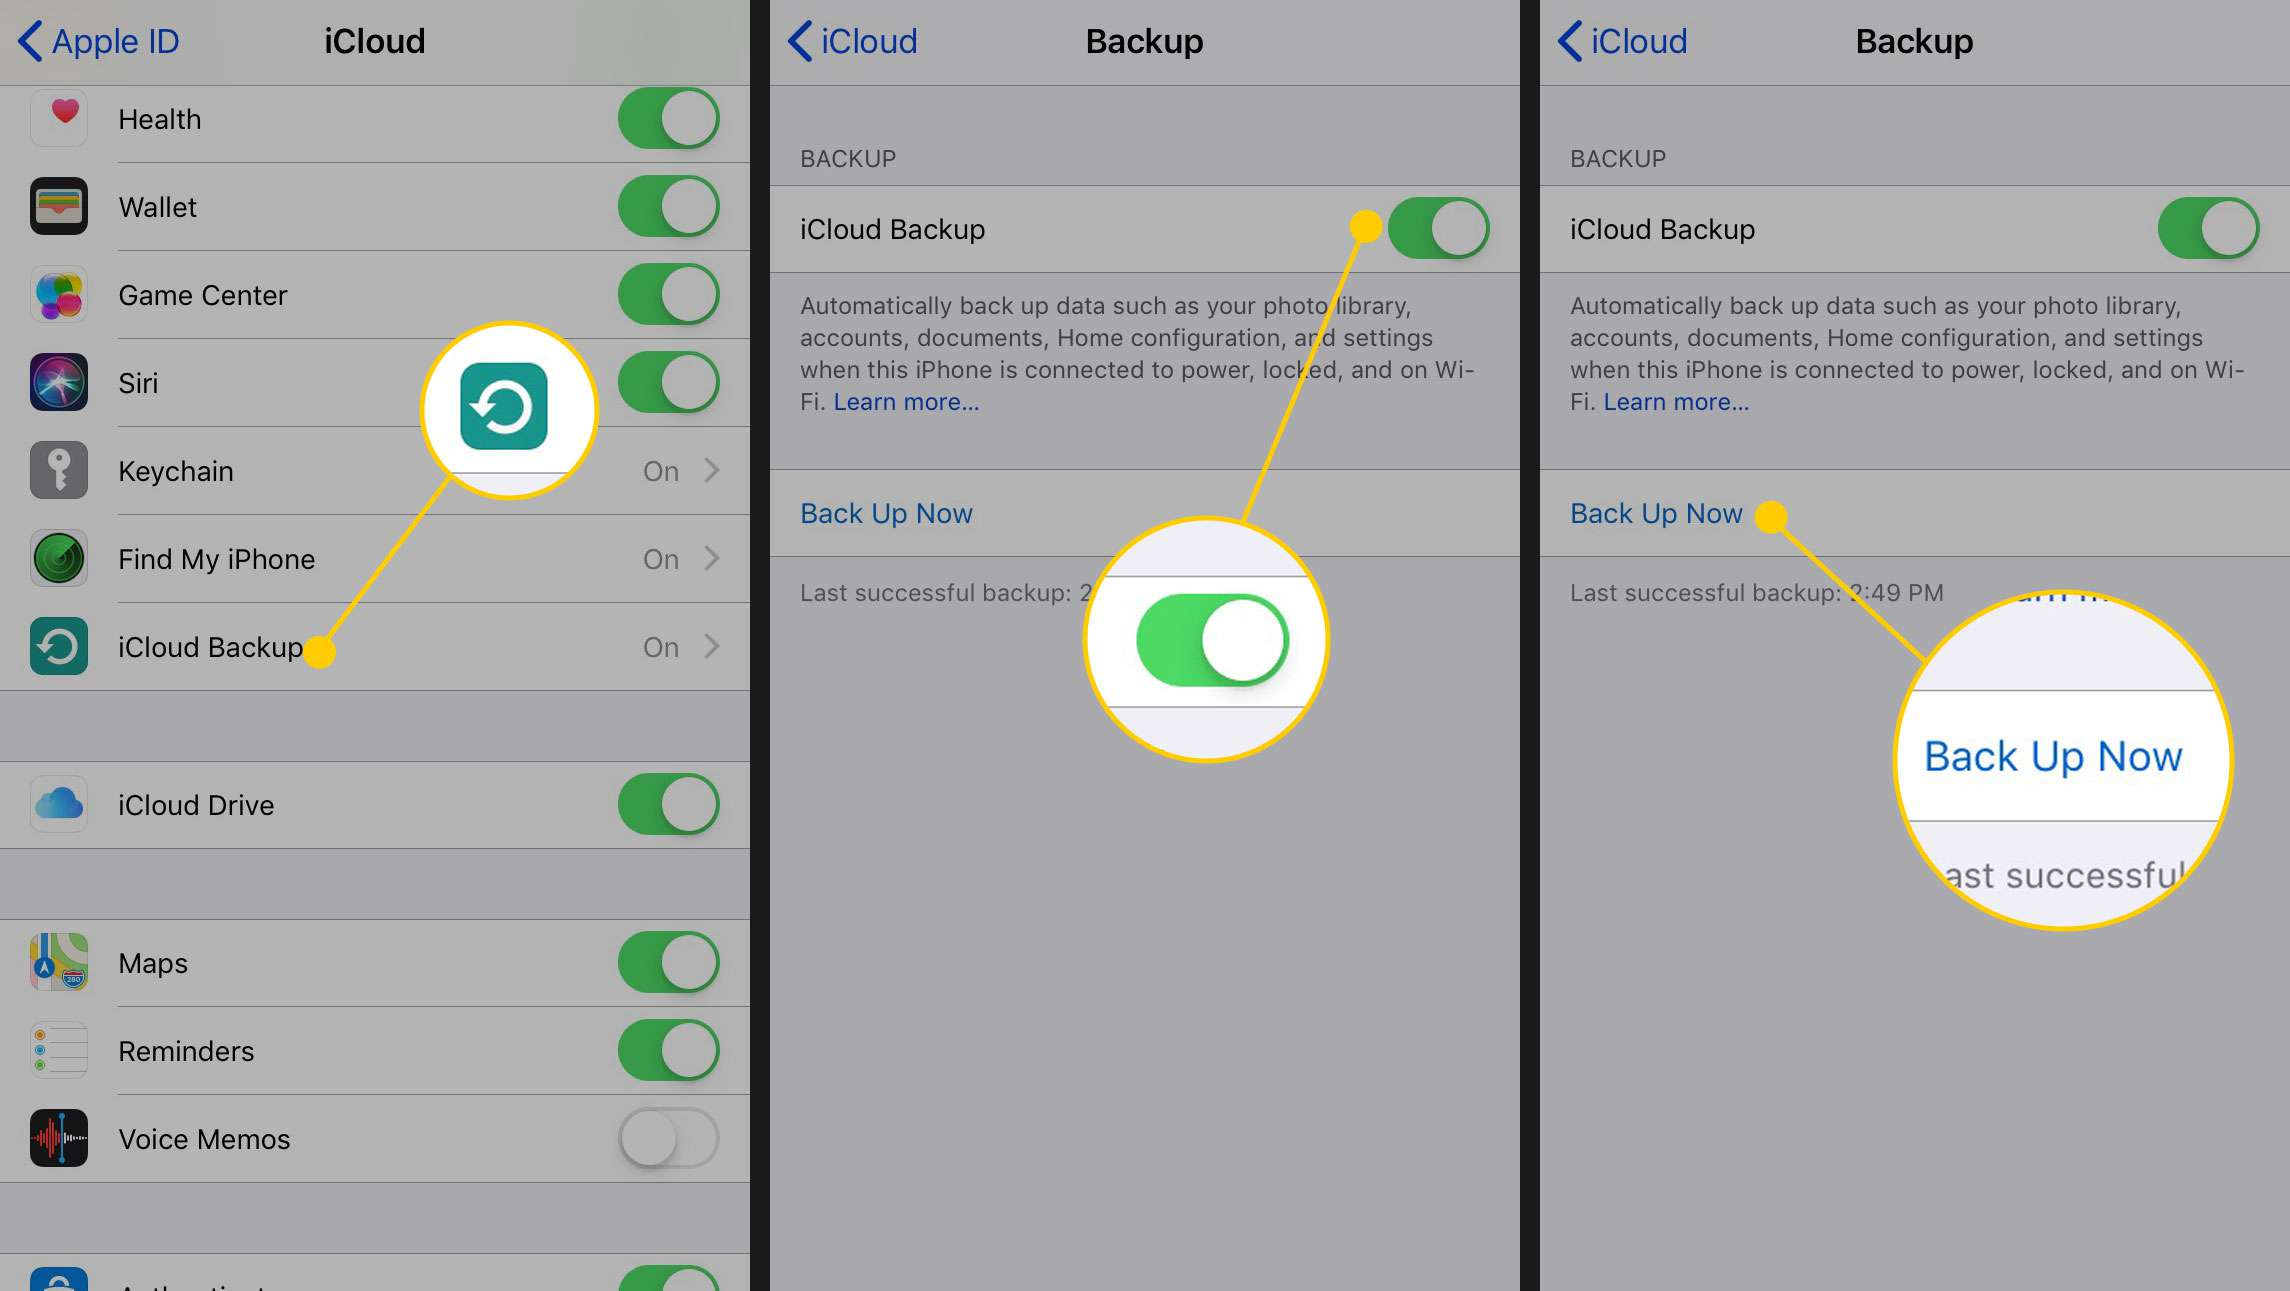 iCloud Settings on an iPhone with the iCloud Backup item and Back Up Now button highlighted